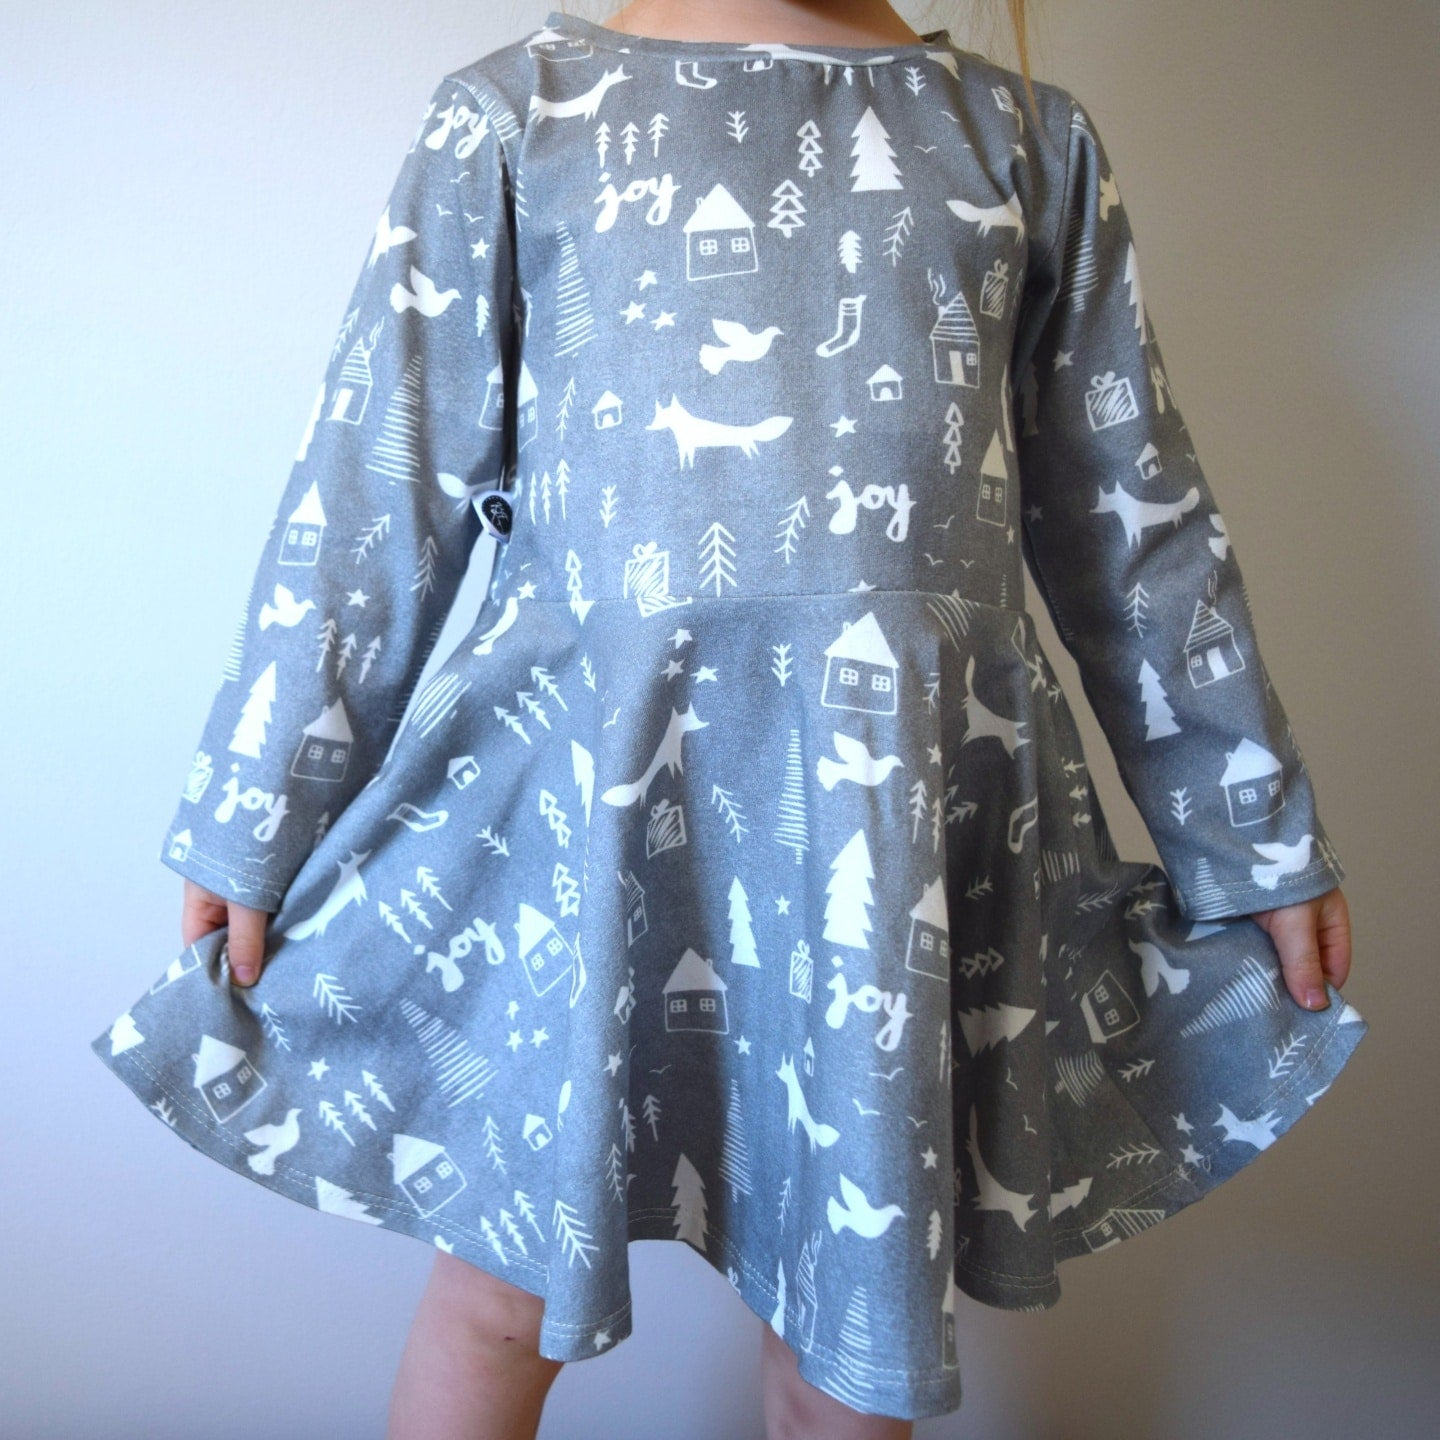 T-Shirt Dress - Winter Woodland 3 | KJF Clothing